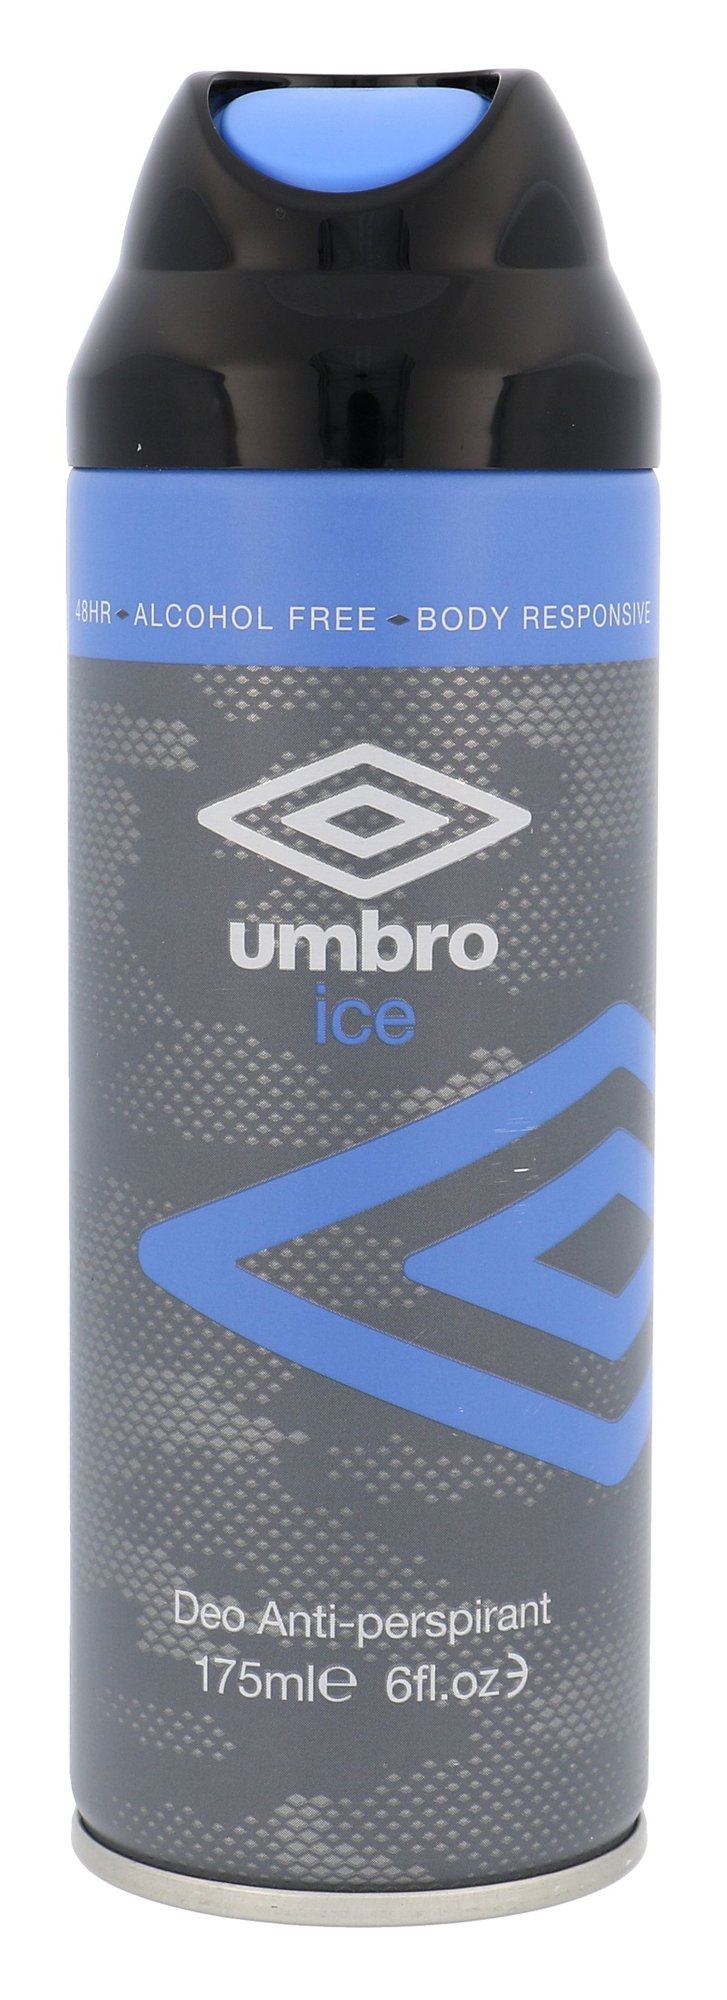 UMBRO Ice Antiperspirant 175ml